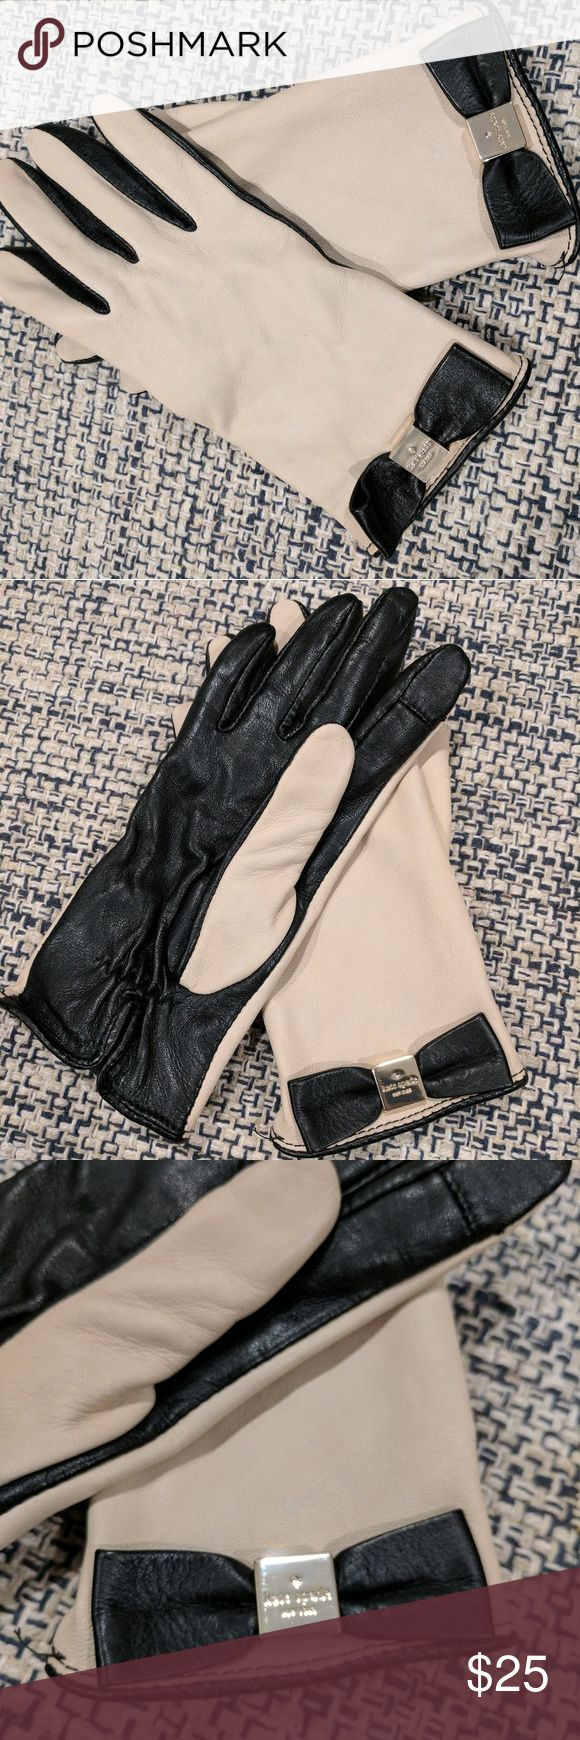 Kate Spade Short Cream Gloves Kate Spade classy gloves to drive around in your vintage car. Cream and black sheep skin leather. Black bow. Gold emblem. Touch point finger feature. Soft inside. Size 6.5. I would call them small. Never worn. kate spade Accessories Gloves & Mittens